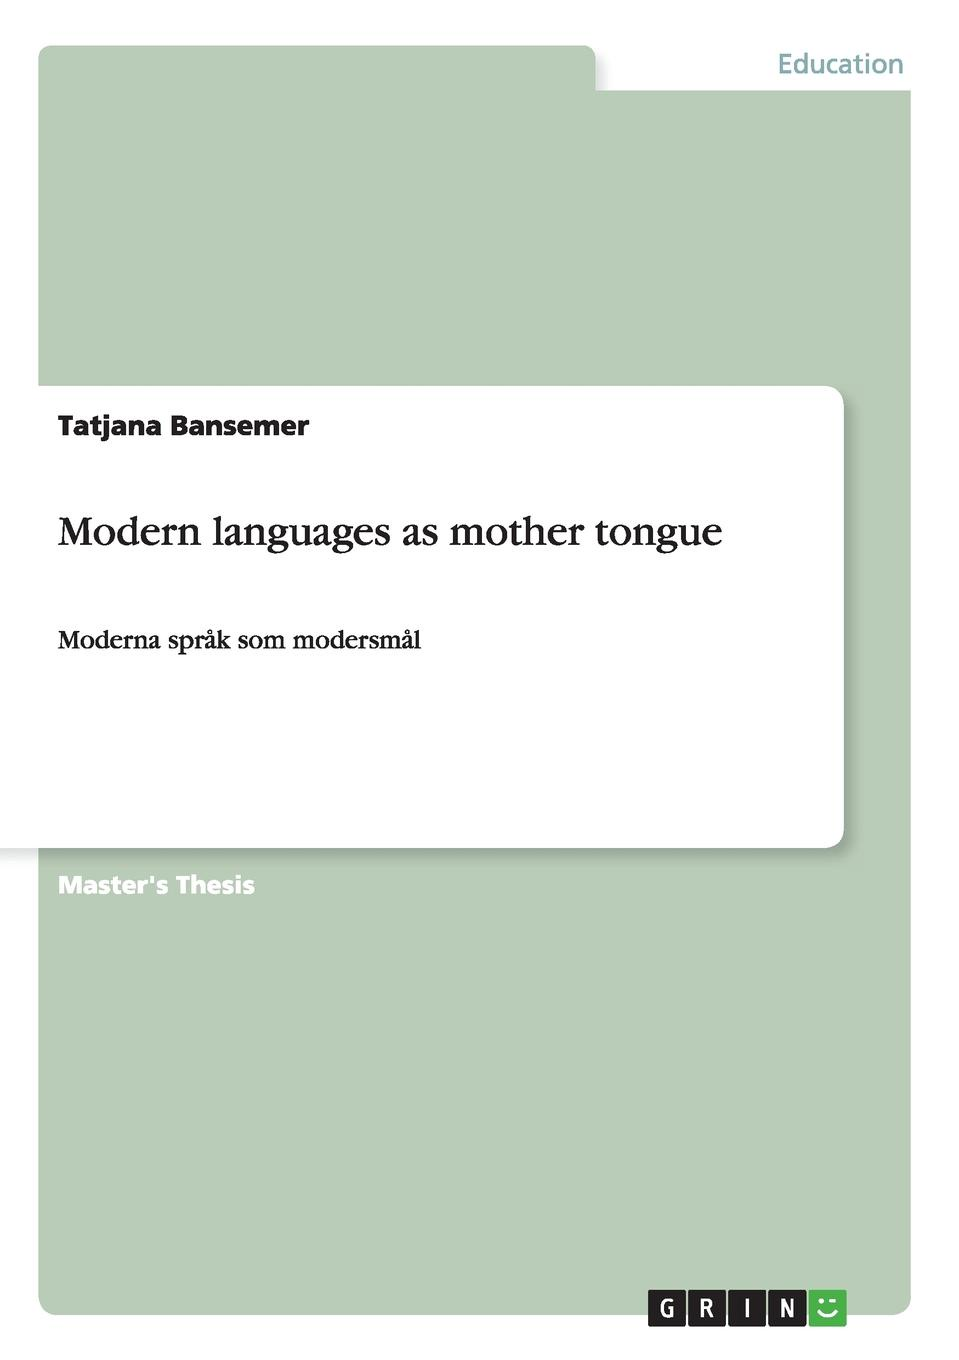 Tatjana Bansemer Modern languages as mother tongue jac ahrenberg manniskor som jag kant personliga minnen utdrag ur bref och anteckningar volume 3 swedish edition